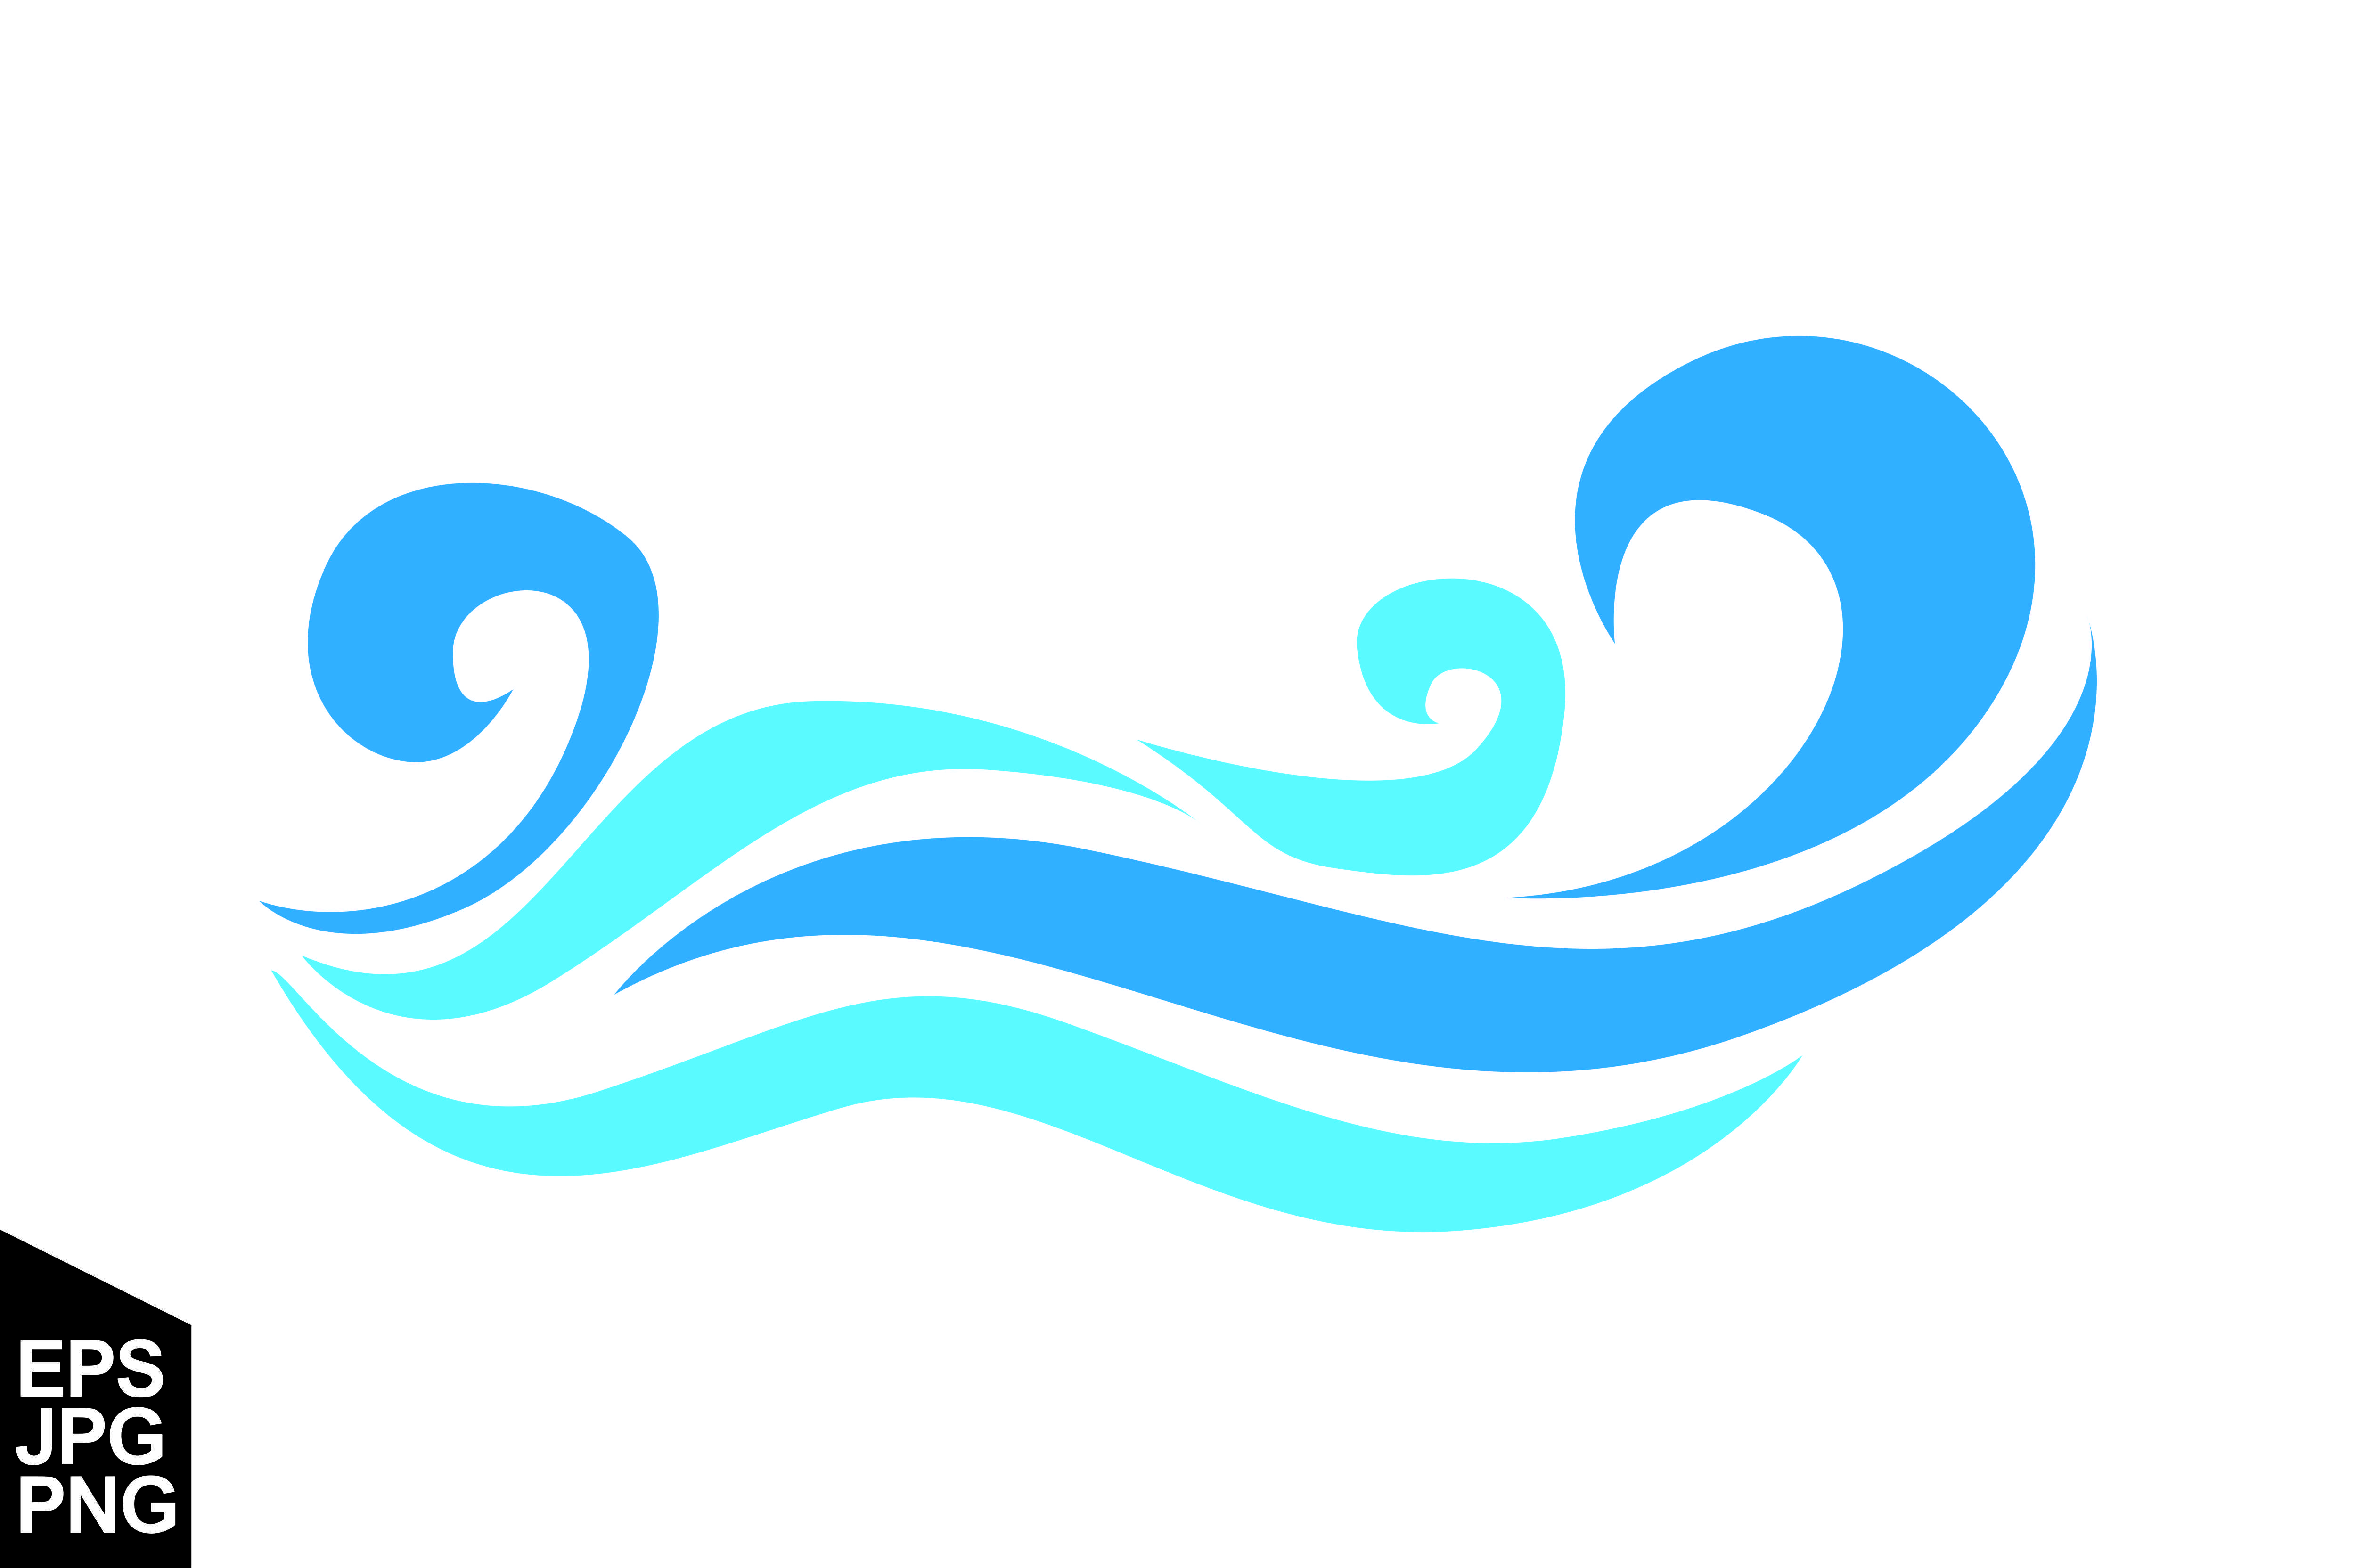 Download Free Abstract Blue Sea Waves Vector Graphic By Arief Sapta Adjie Ii SVG Cut Files